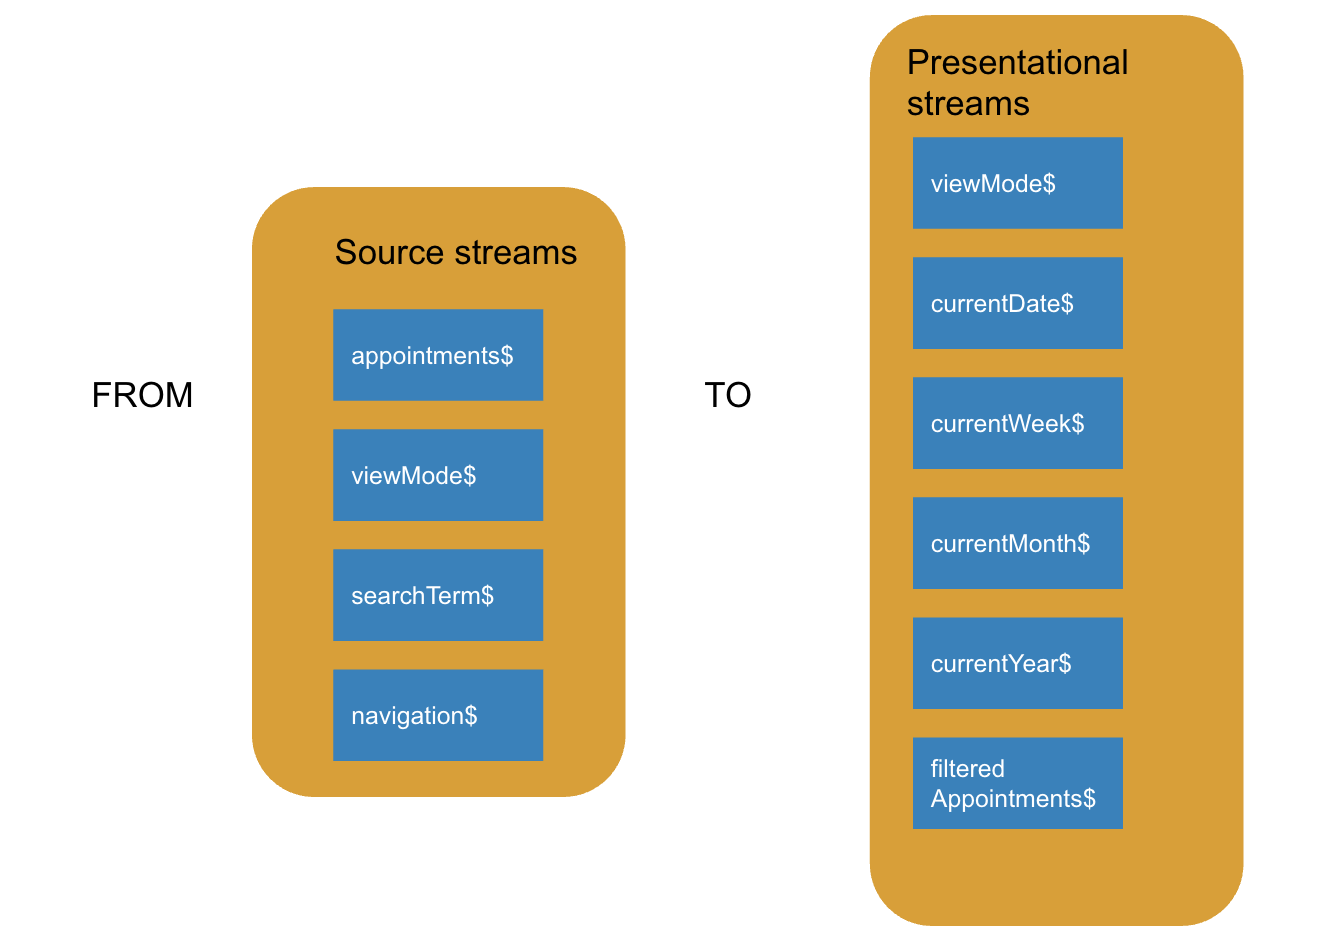 sources to presentational streams